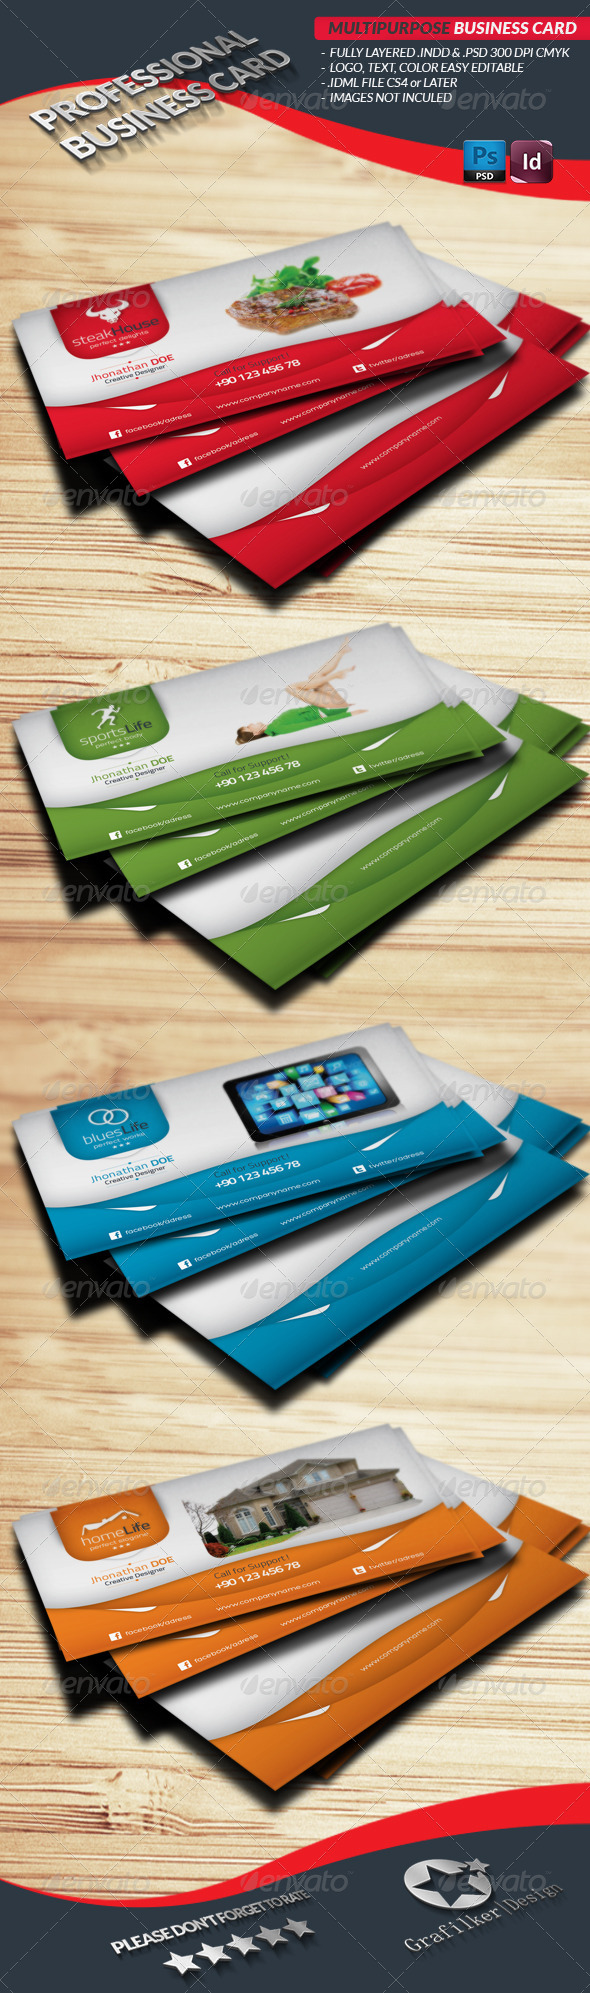 GraphicRiver Multipurpose Business Card Template 4282723